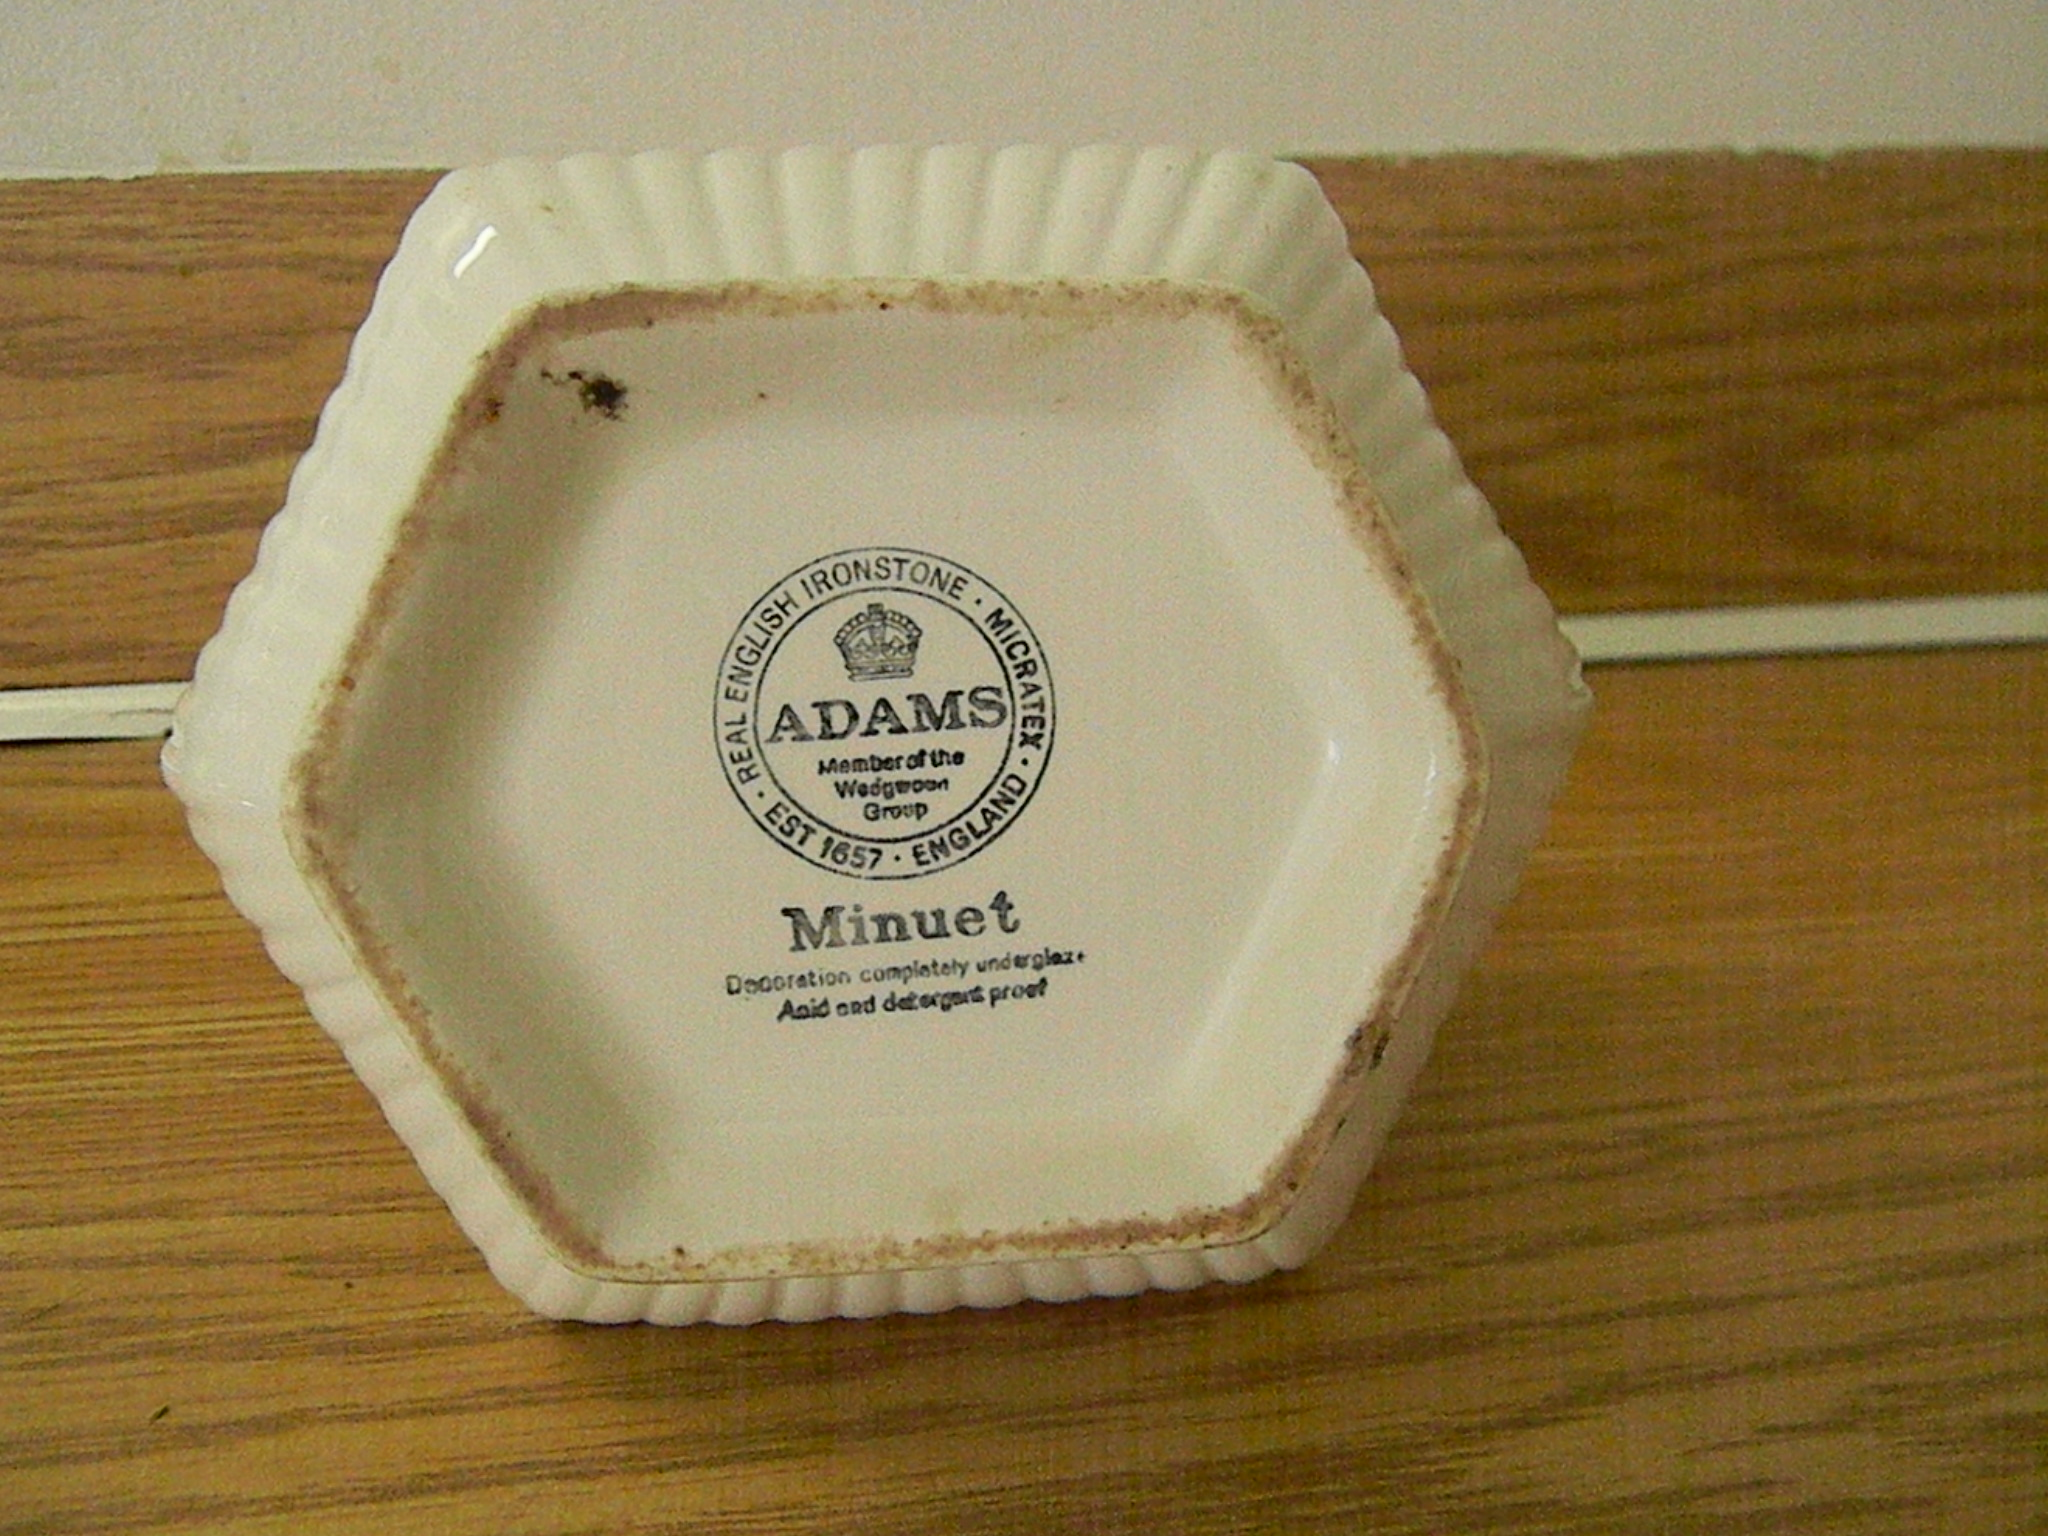 Adams Real English Ironstone Micratex Decoration Completely Under